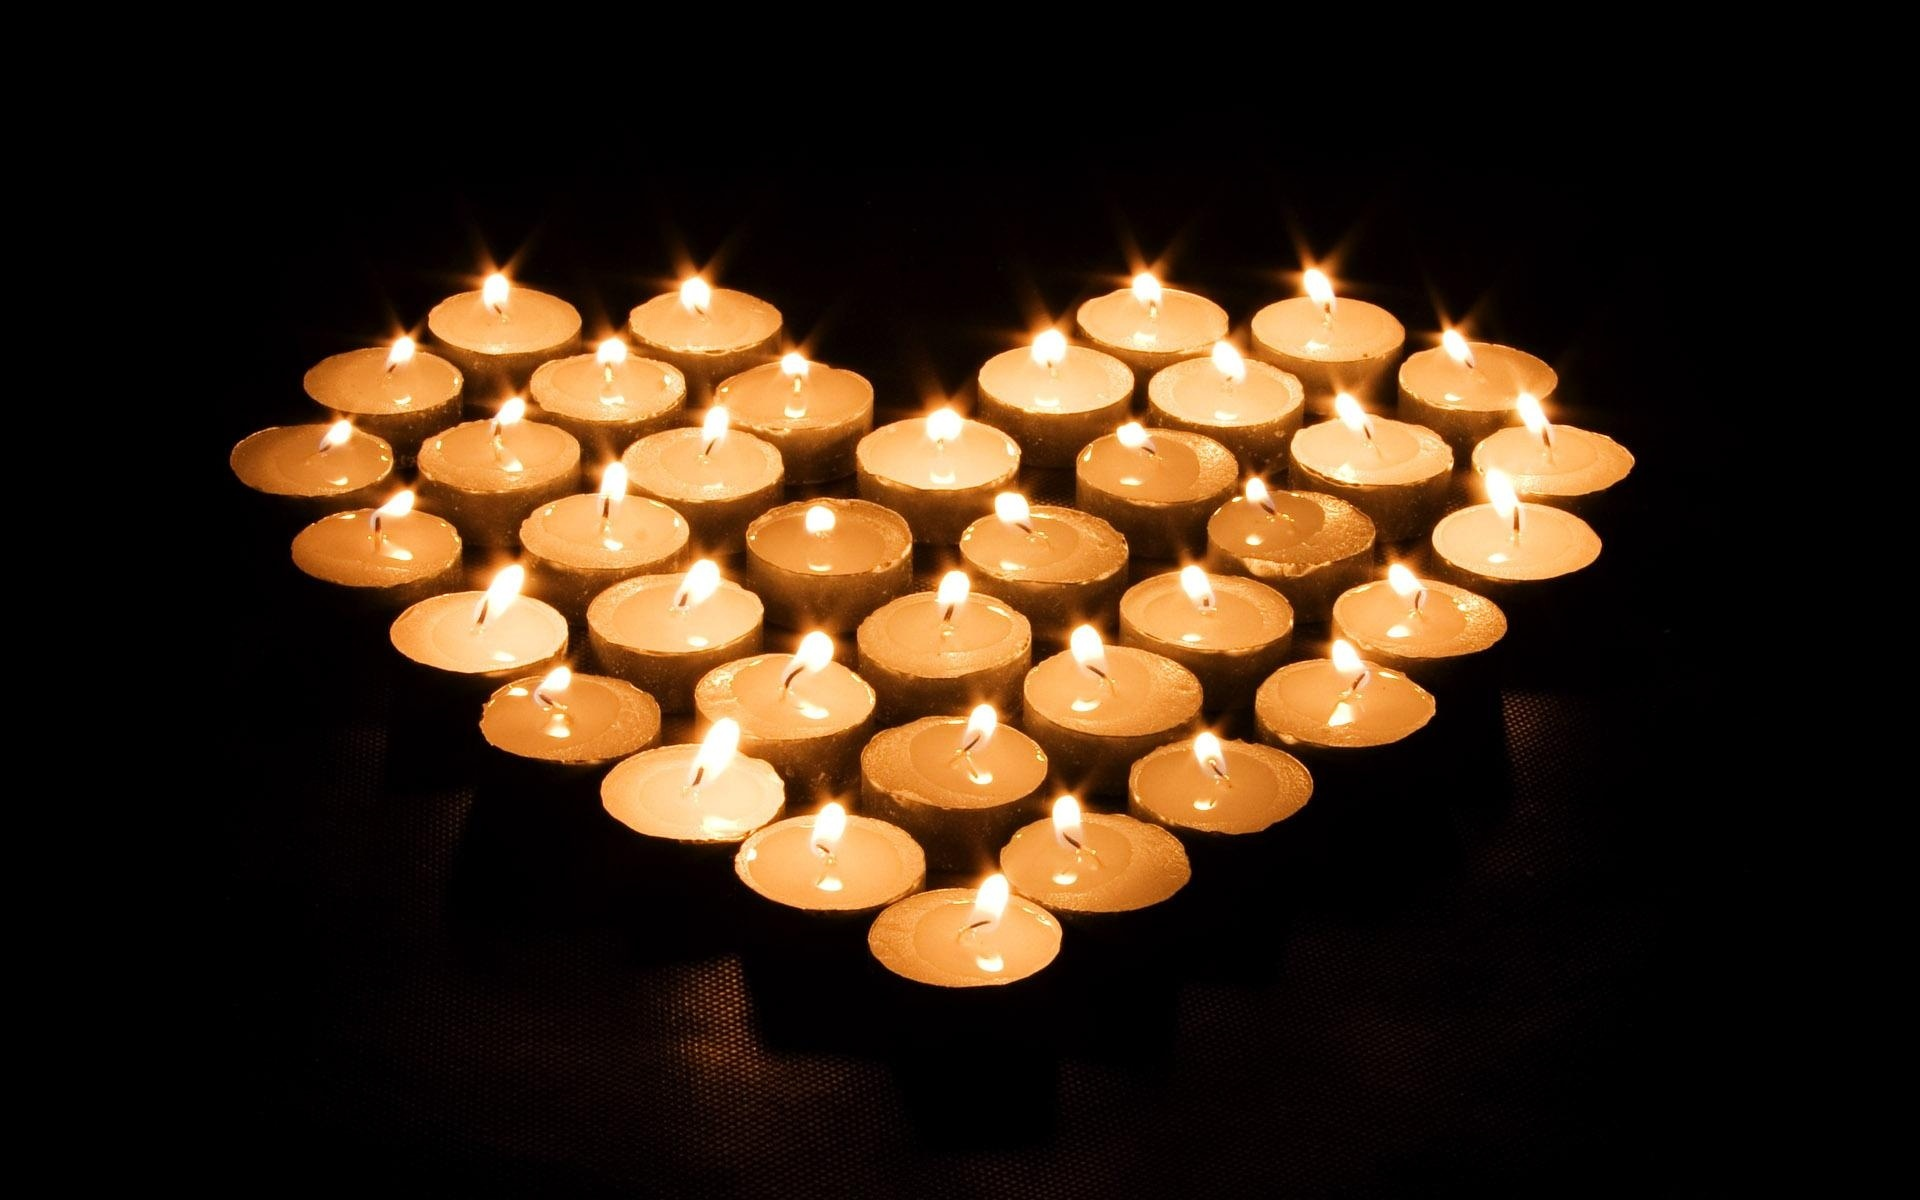 Candle Full HD Wallpaper and Background Image | 1920x1200 | ID:229342 for Heart Candle Wallpaper  545xkb